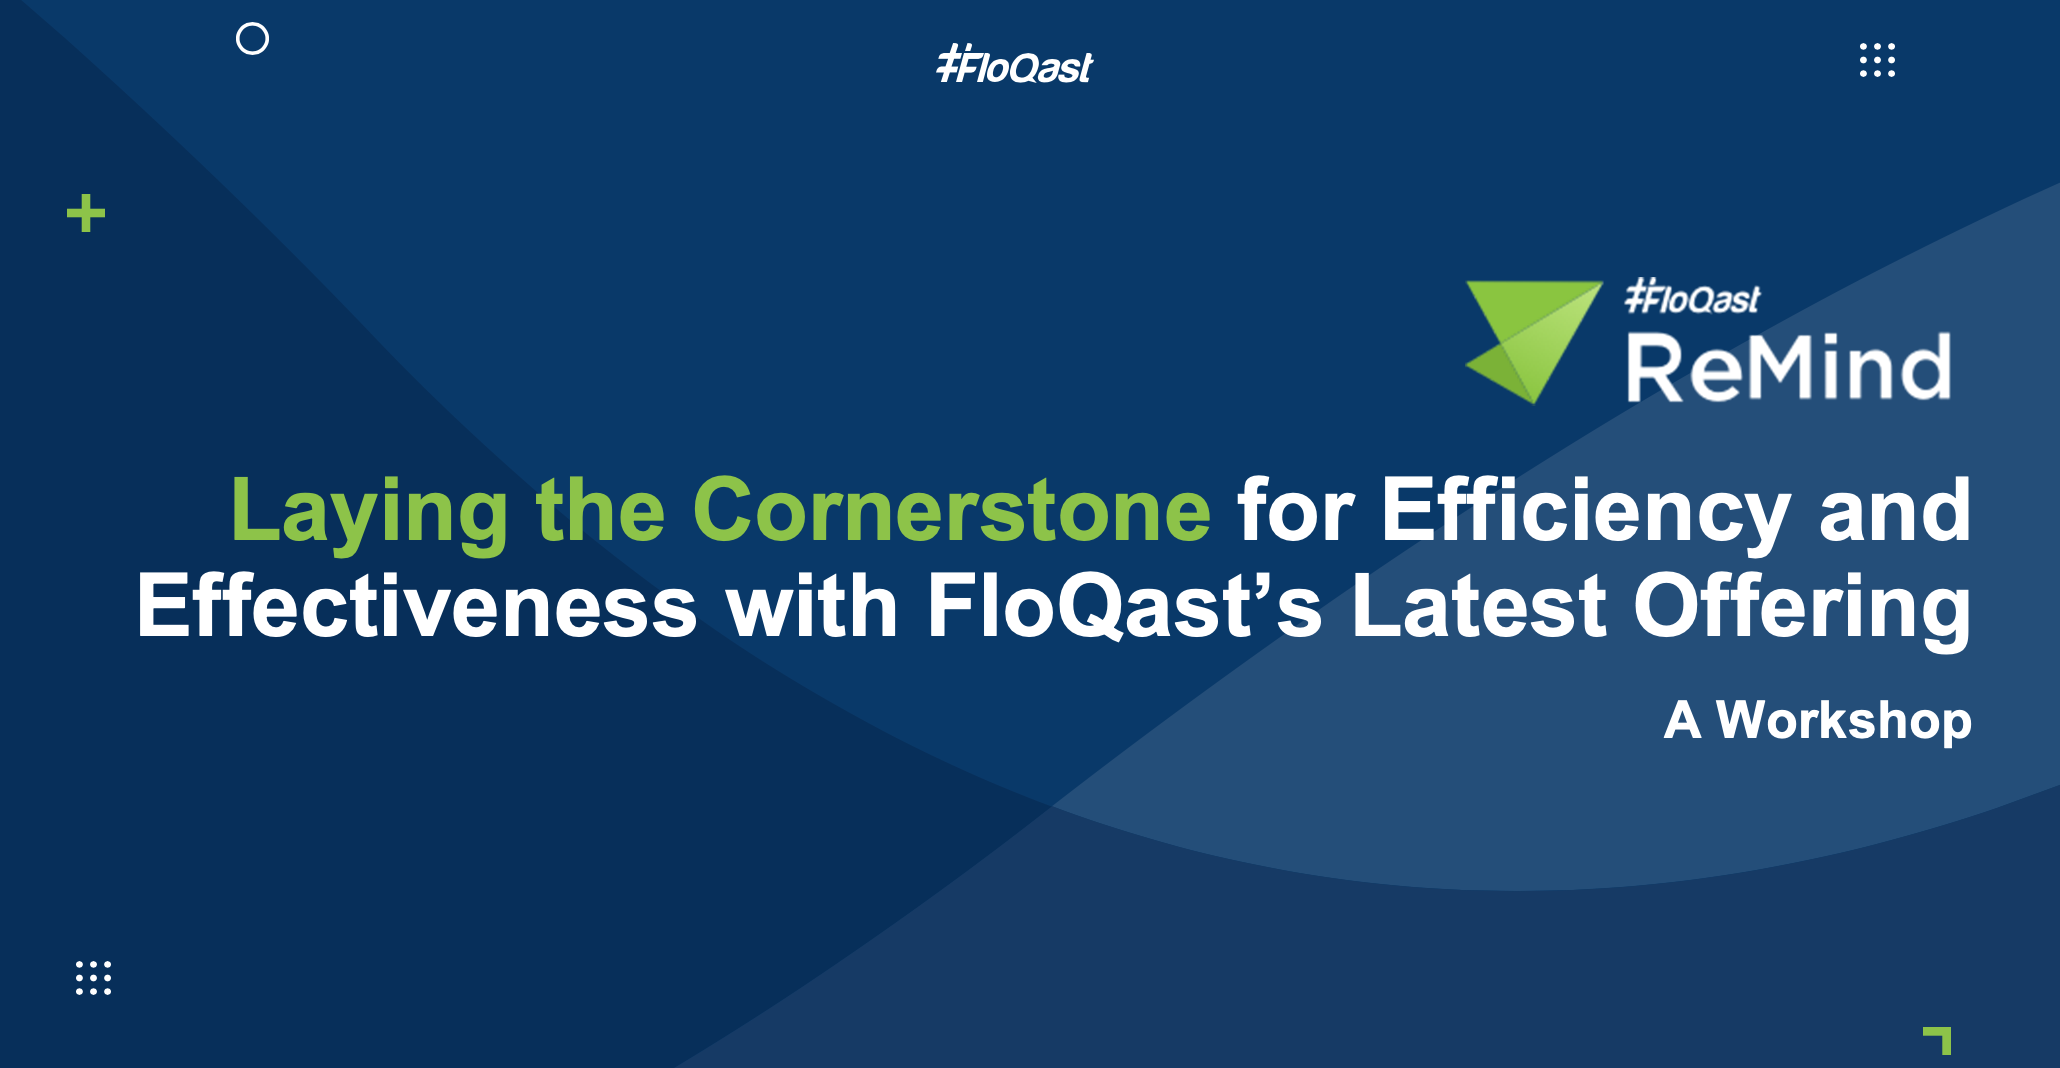 Laying the Cornerstone for Efficiency - ReMind